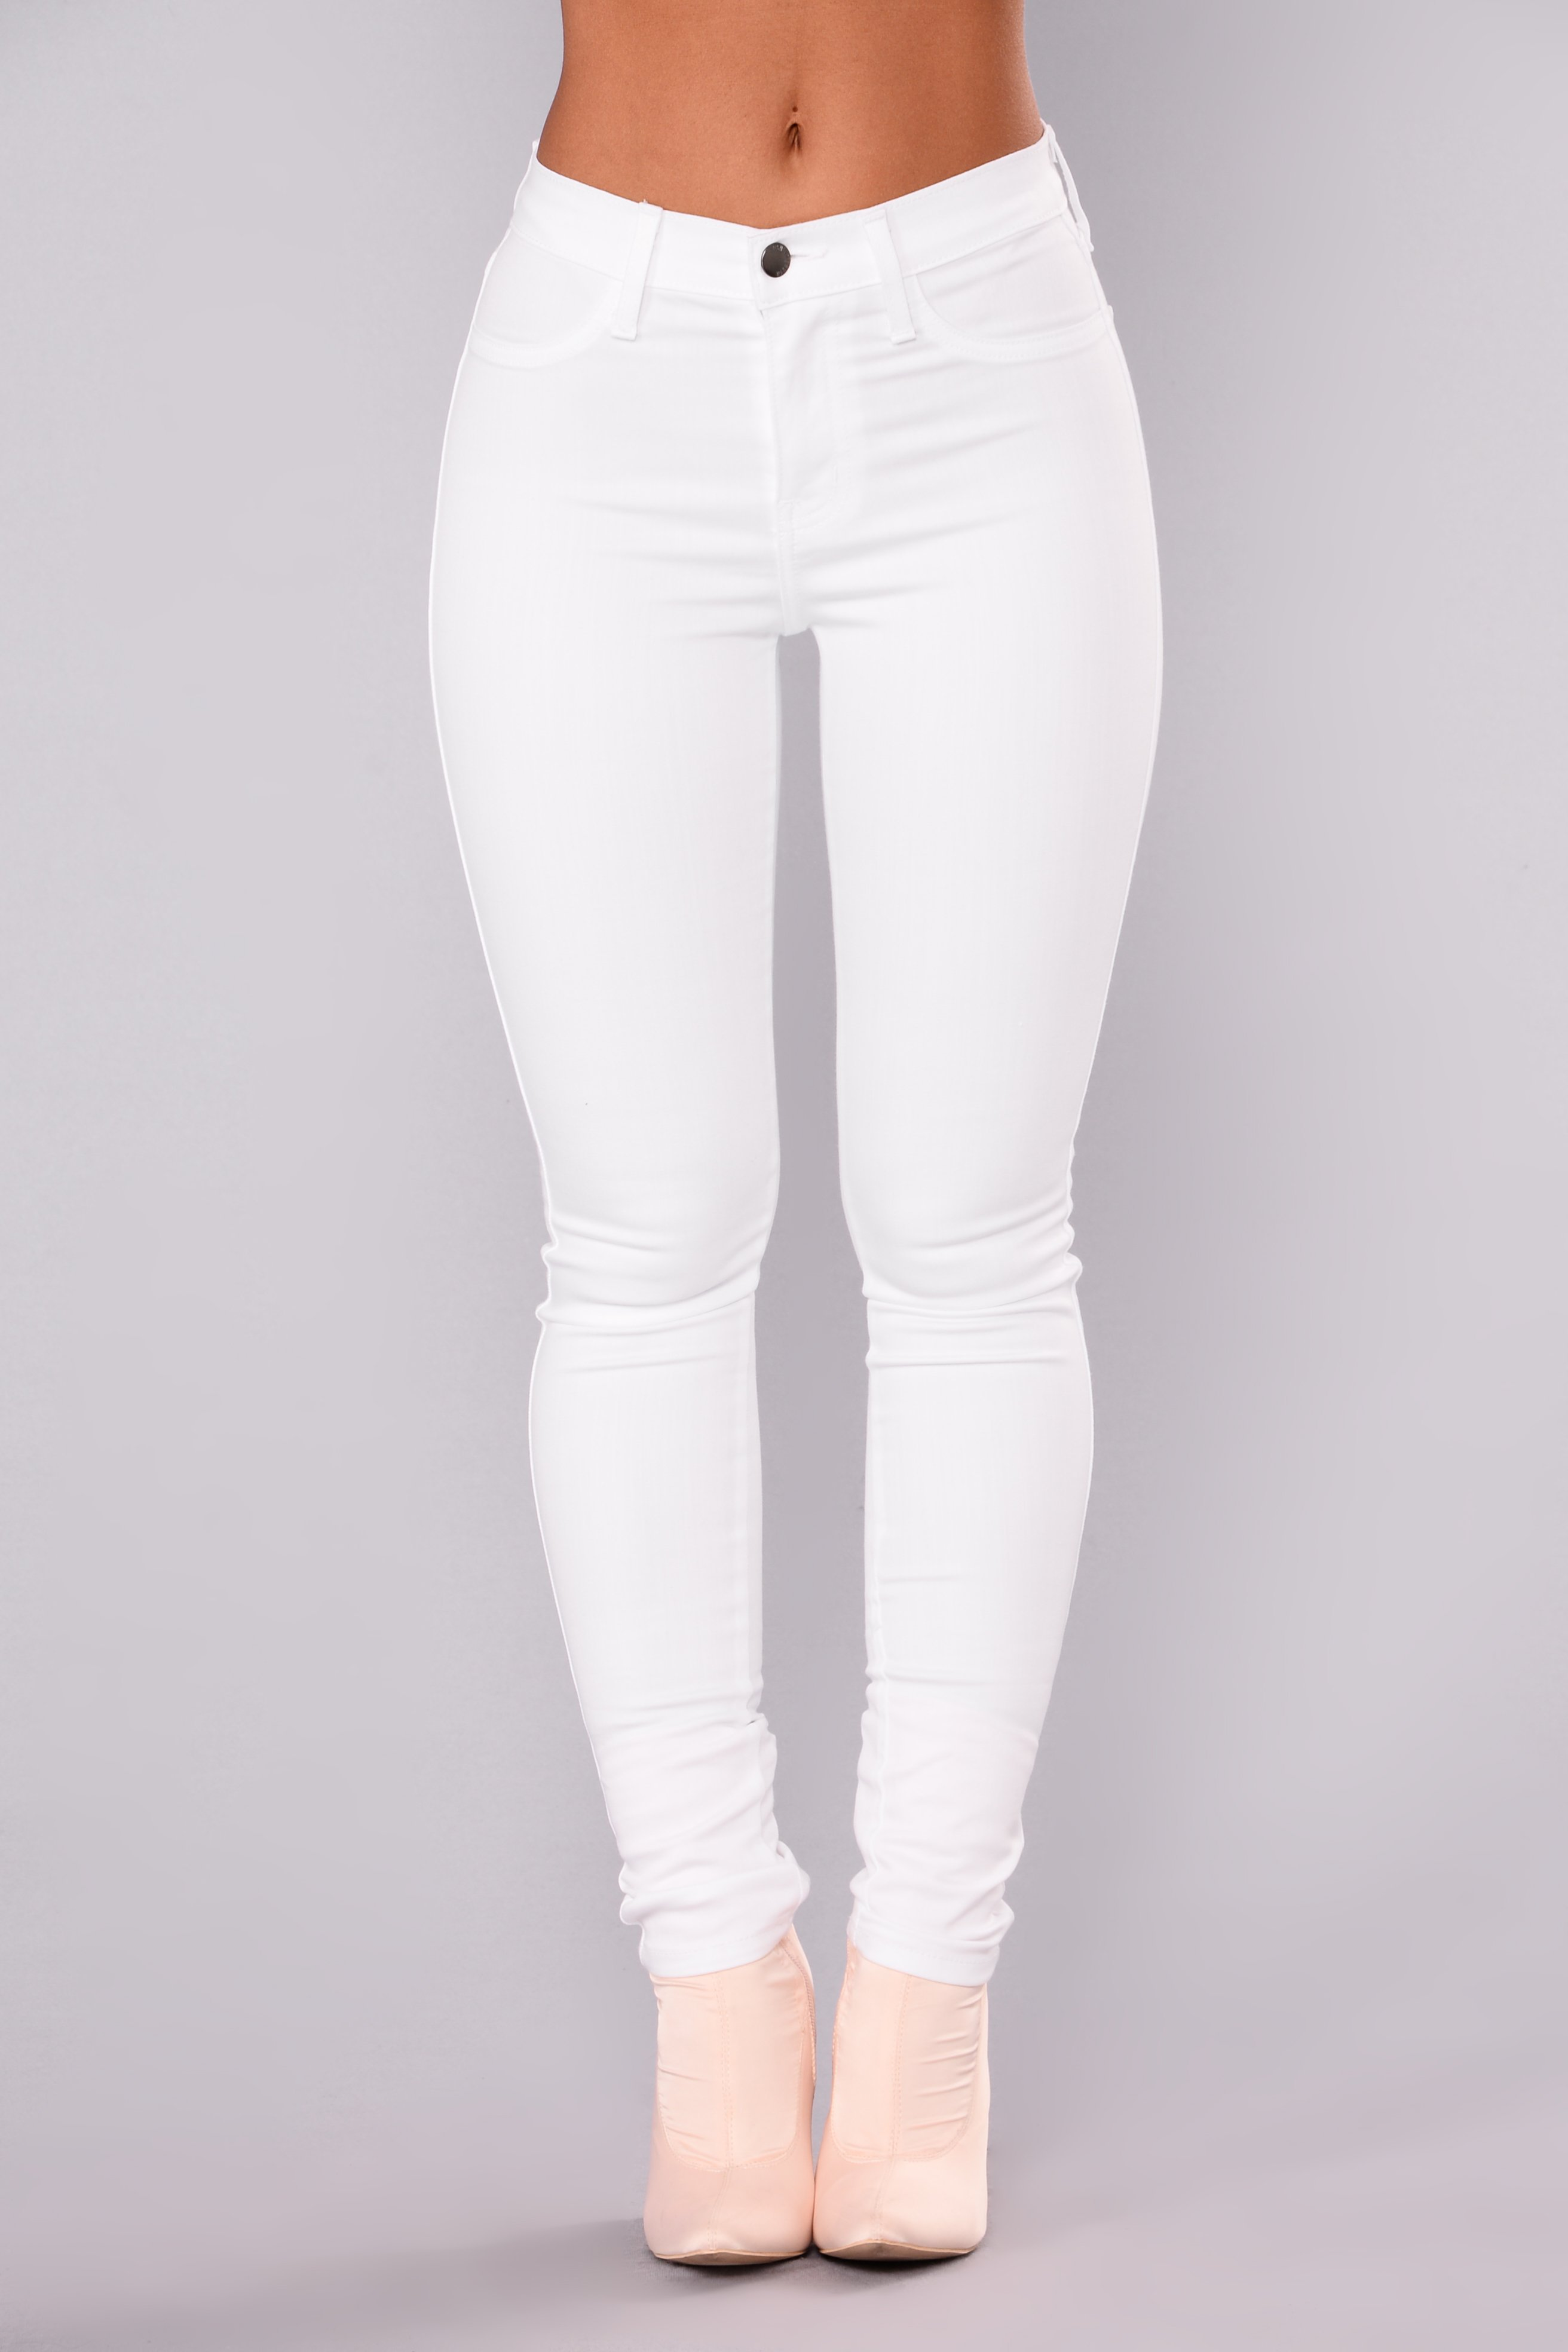 forever white jeans - white BIEALRB